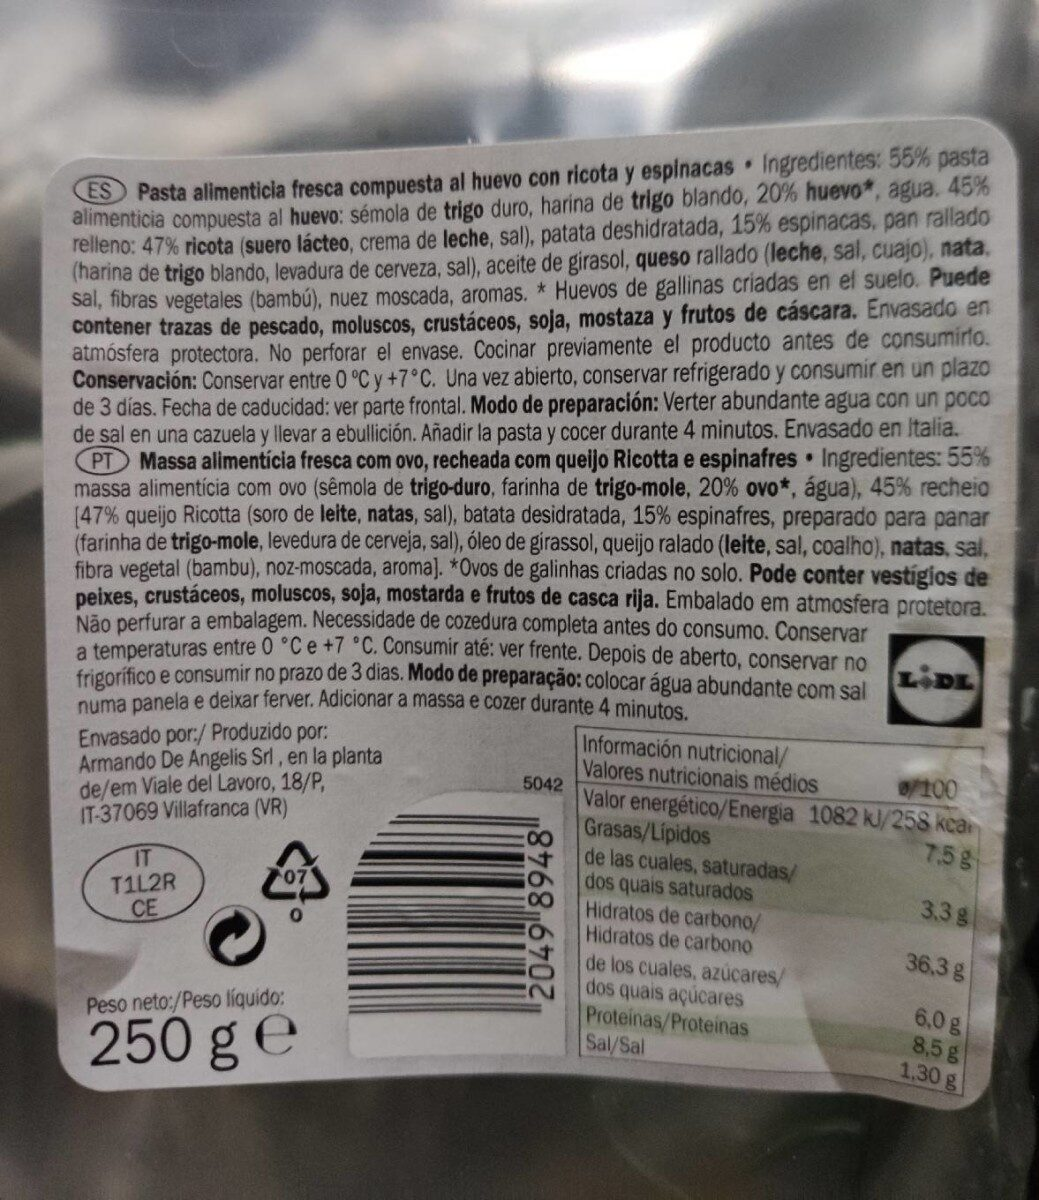 Totelloni ricotta y espinacas - Informations nutritionnelles - fr